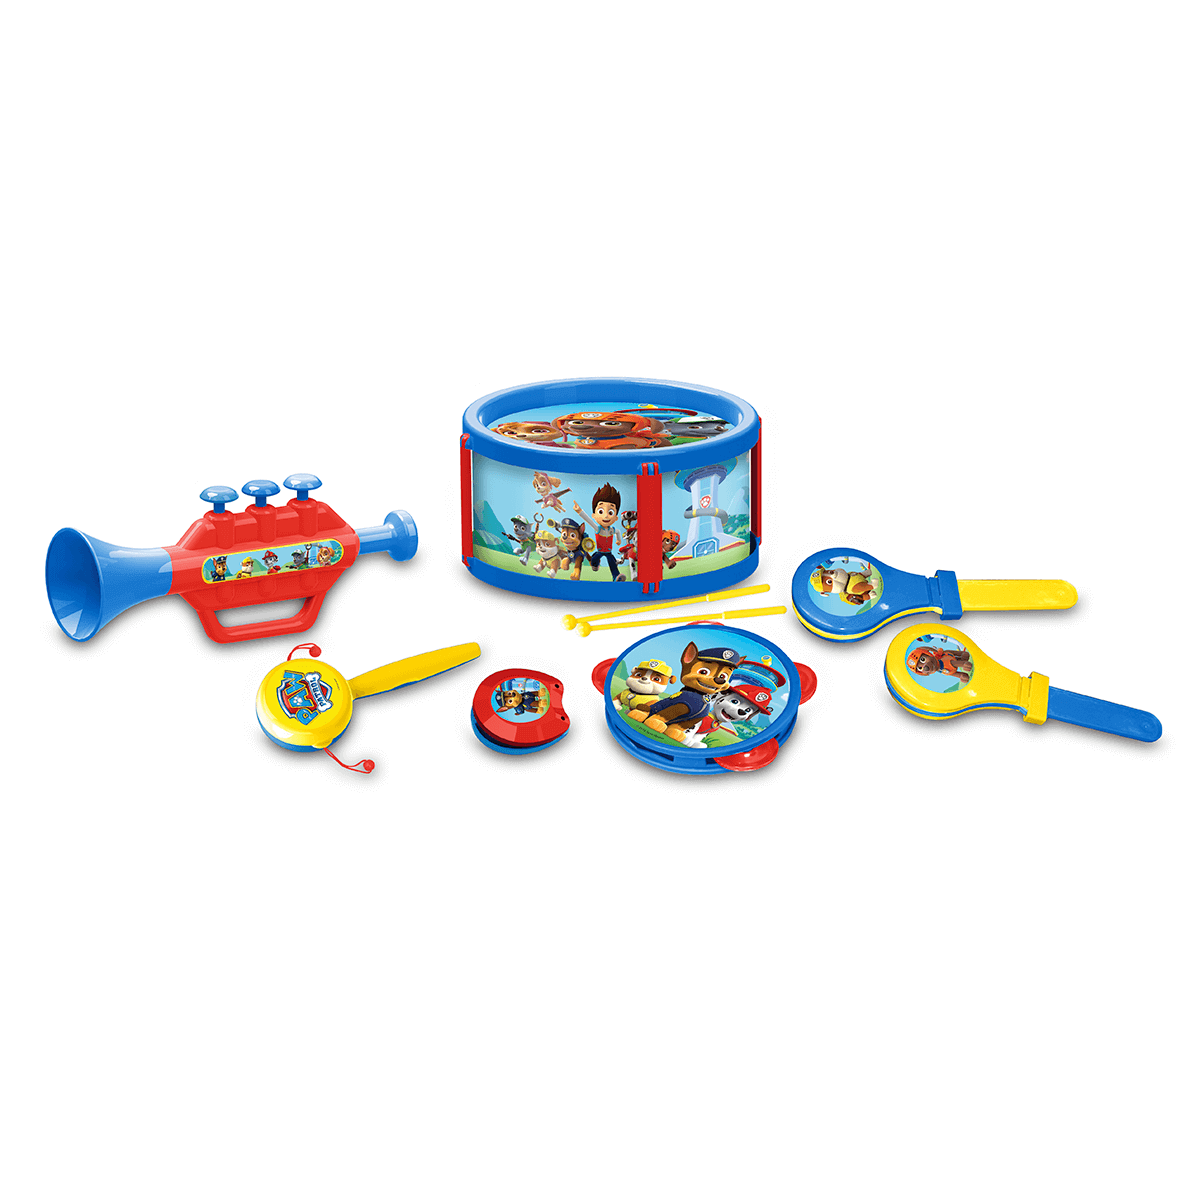 Paw Patrol Musical Band Set from Early Learning Center